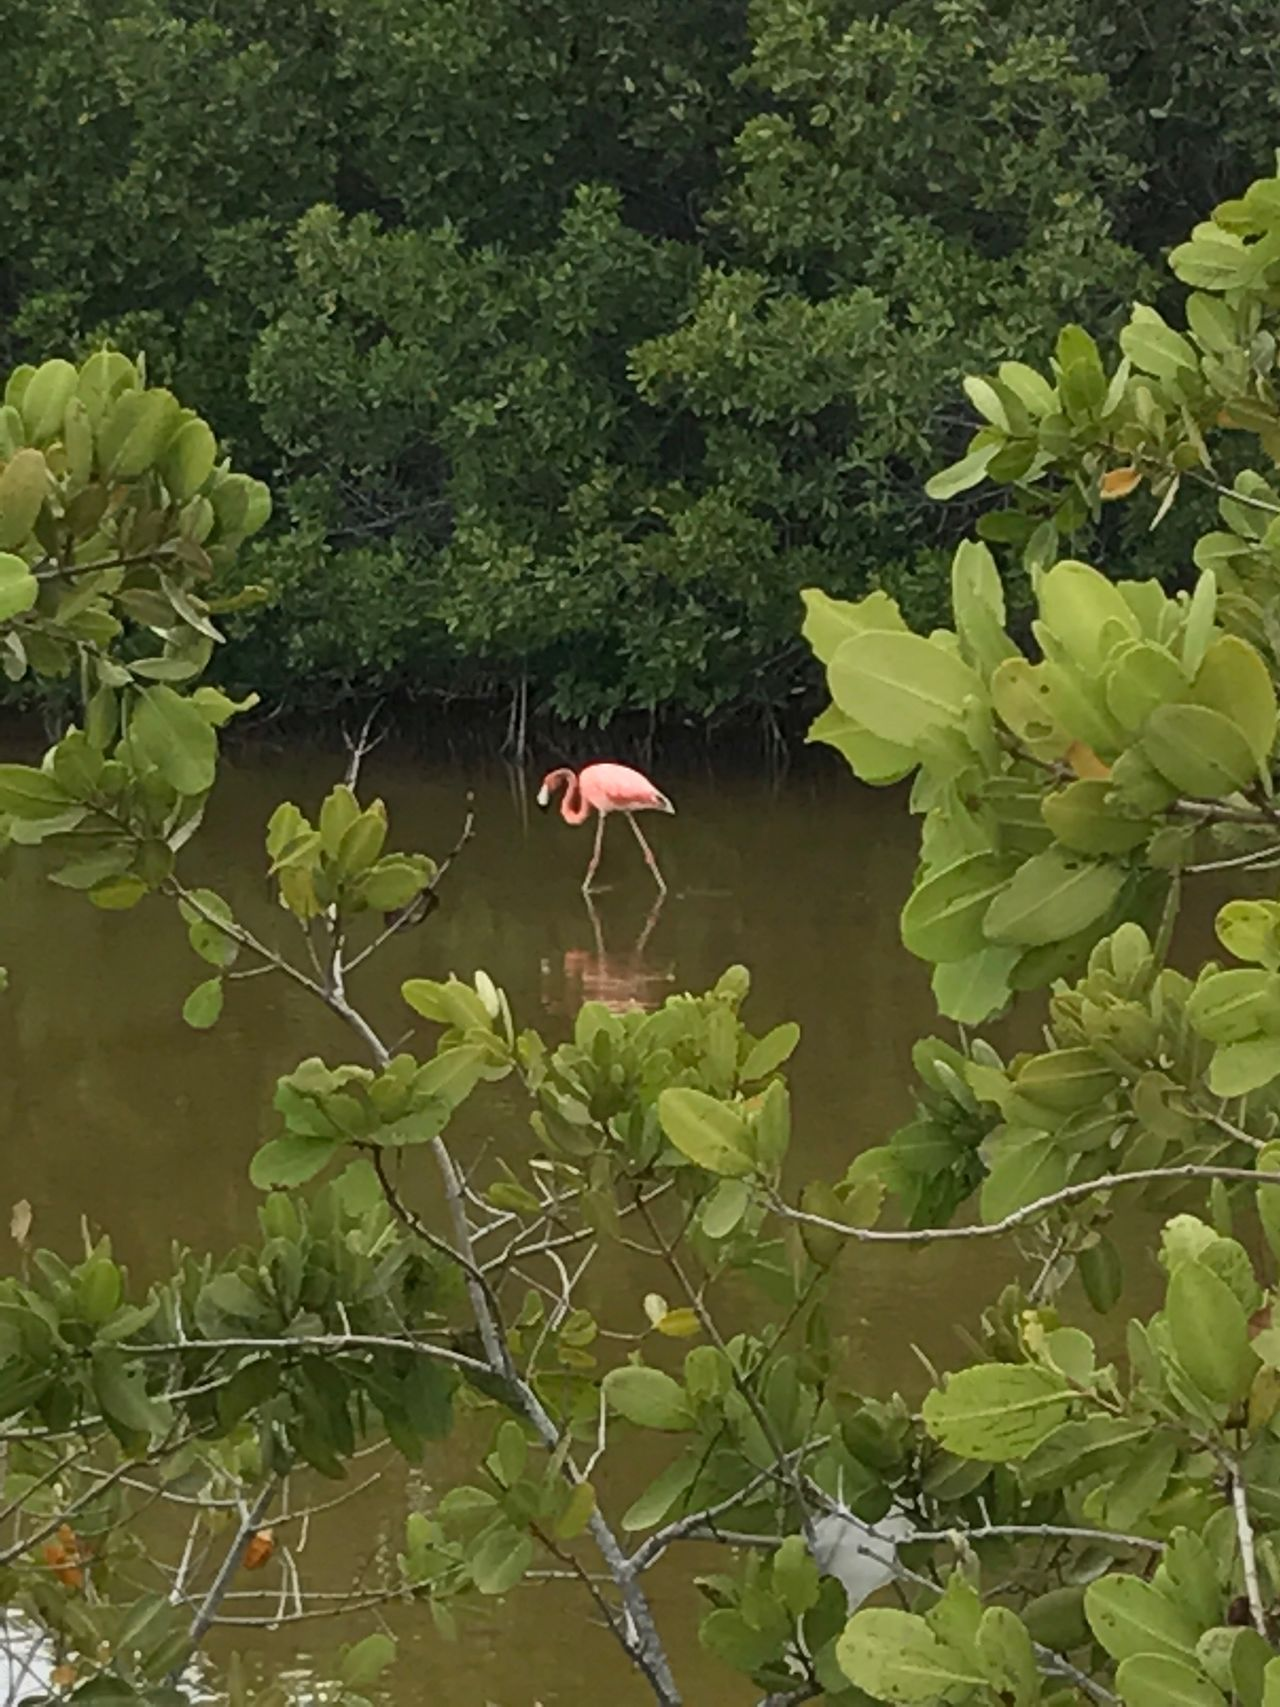 Flamingo in the Mangrove Swamps. Cayo Guillermo, Cuba. EyeEmNewHere Cayo Guillermo, Cuba Cuba Caribbean Flamingo Mangrove Swamp Mangroves Bird Photography